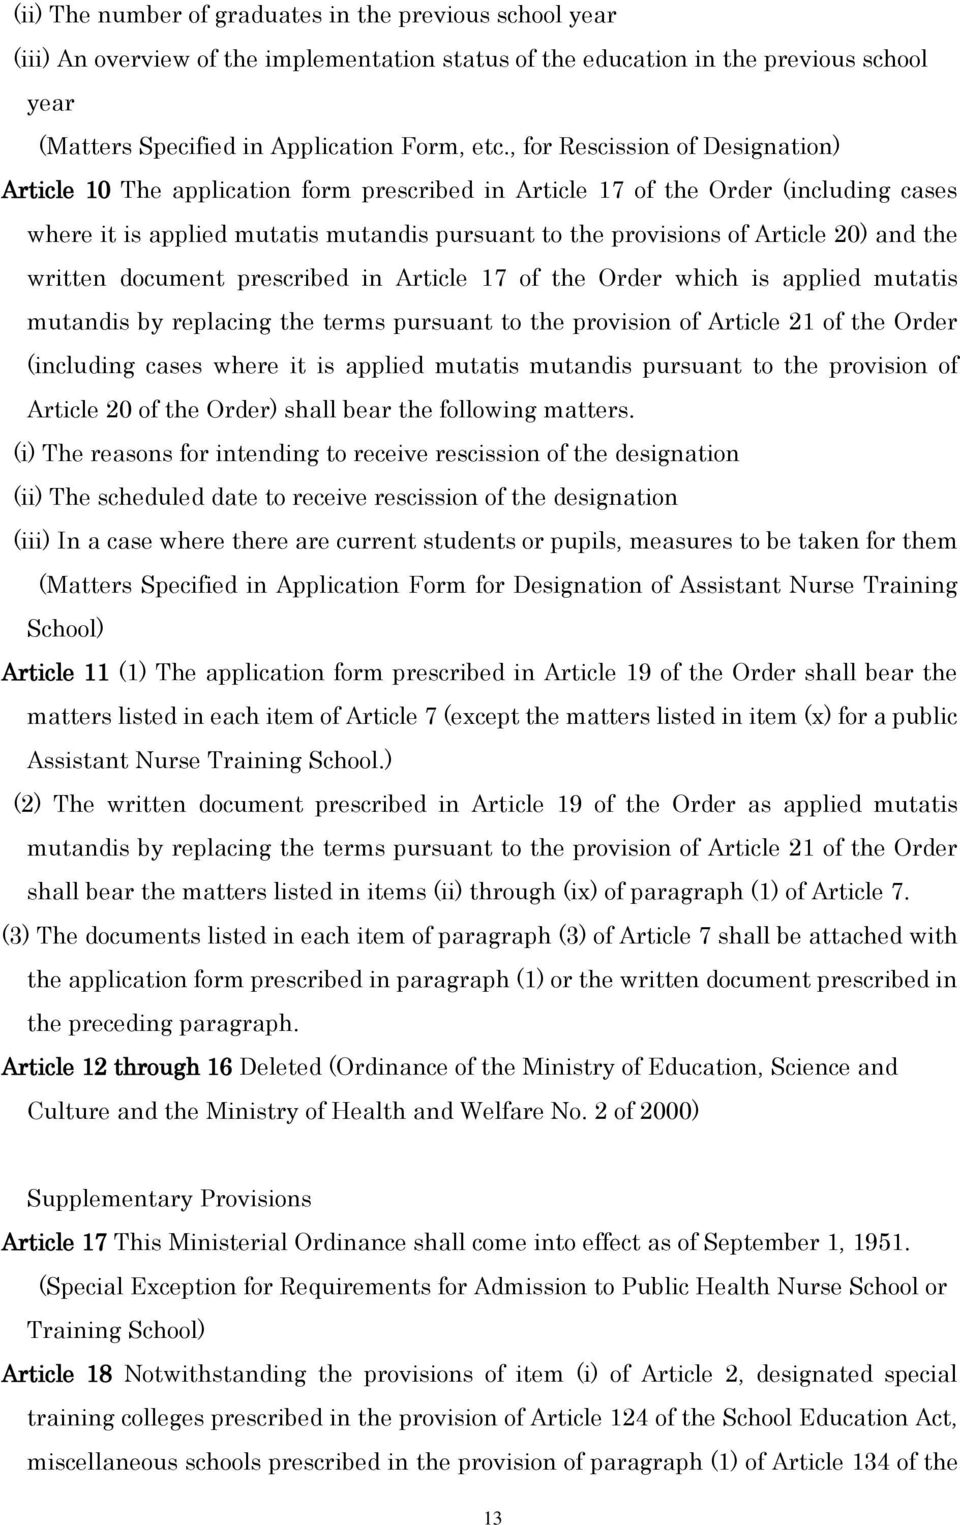 and the written document prescribed in Article 17 of the Order which is applied mutatis mutandis by replacing the terms pursuant to the provision of Article 21 of the Order (including cases where it